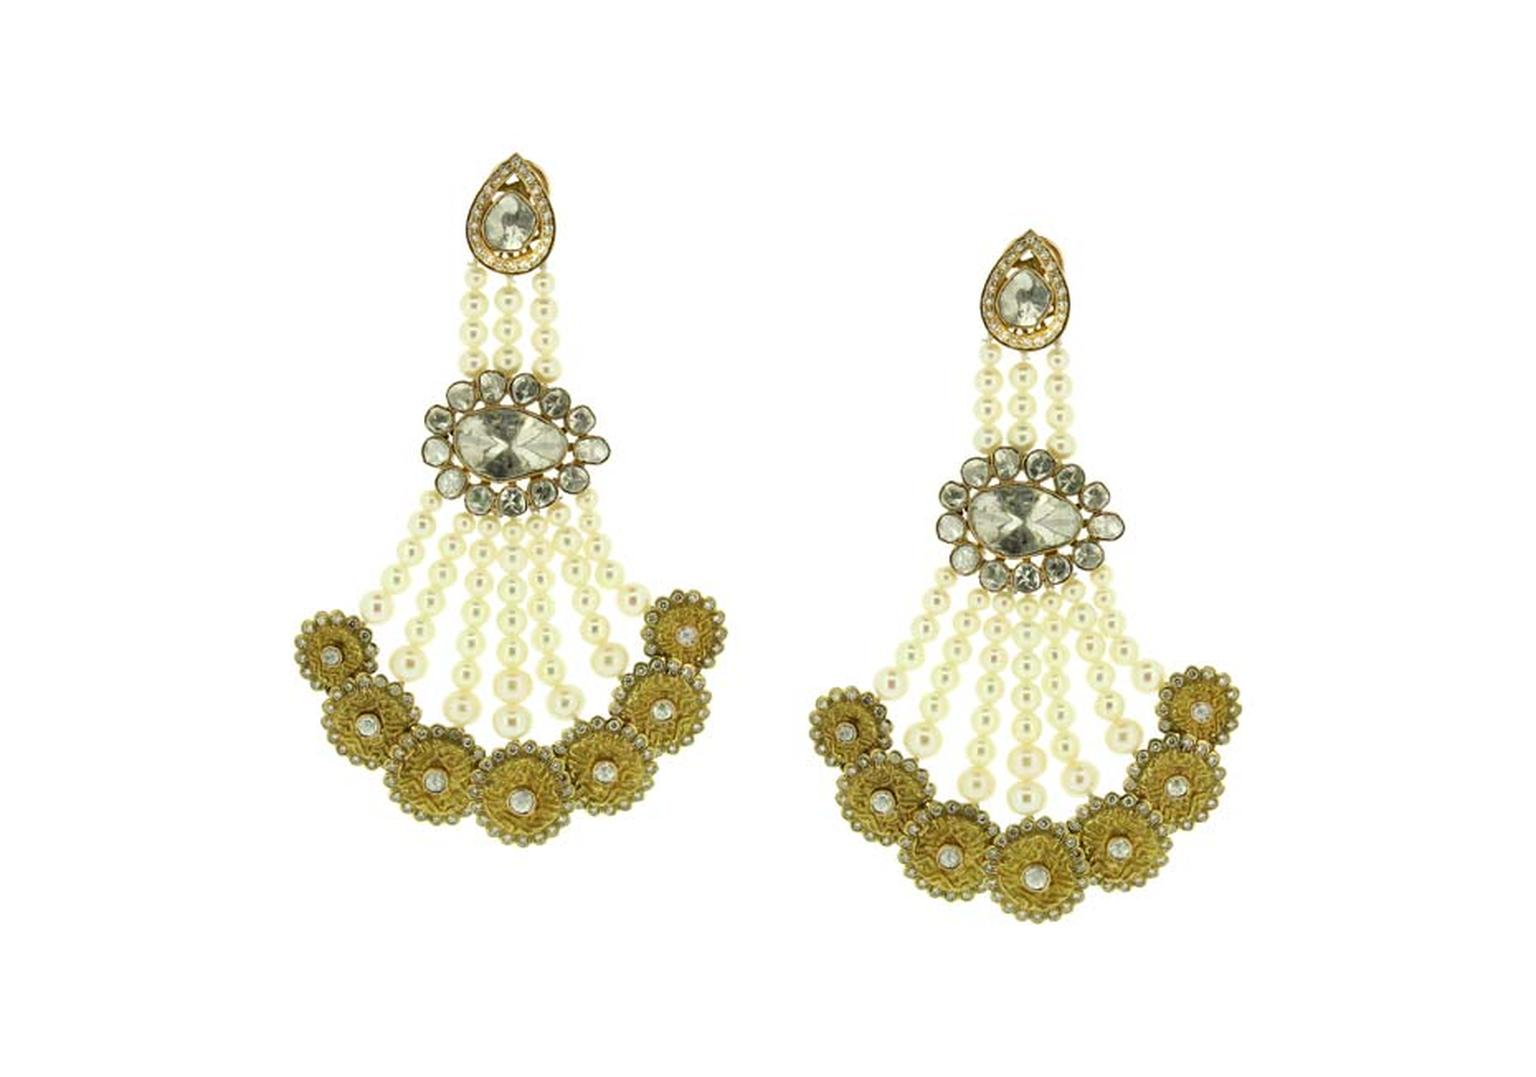 Birdhichand Ghanshyamdas Aks collection Coin earrings with pearls and uncut and brilliant-cut diamonds.